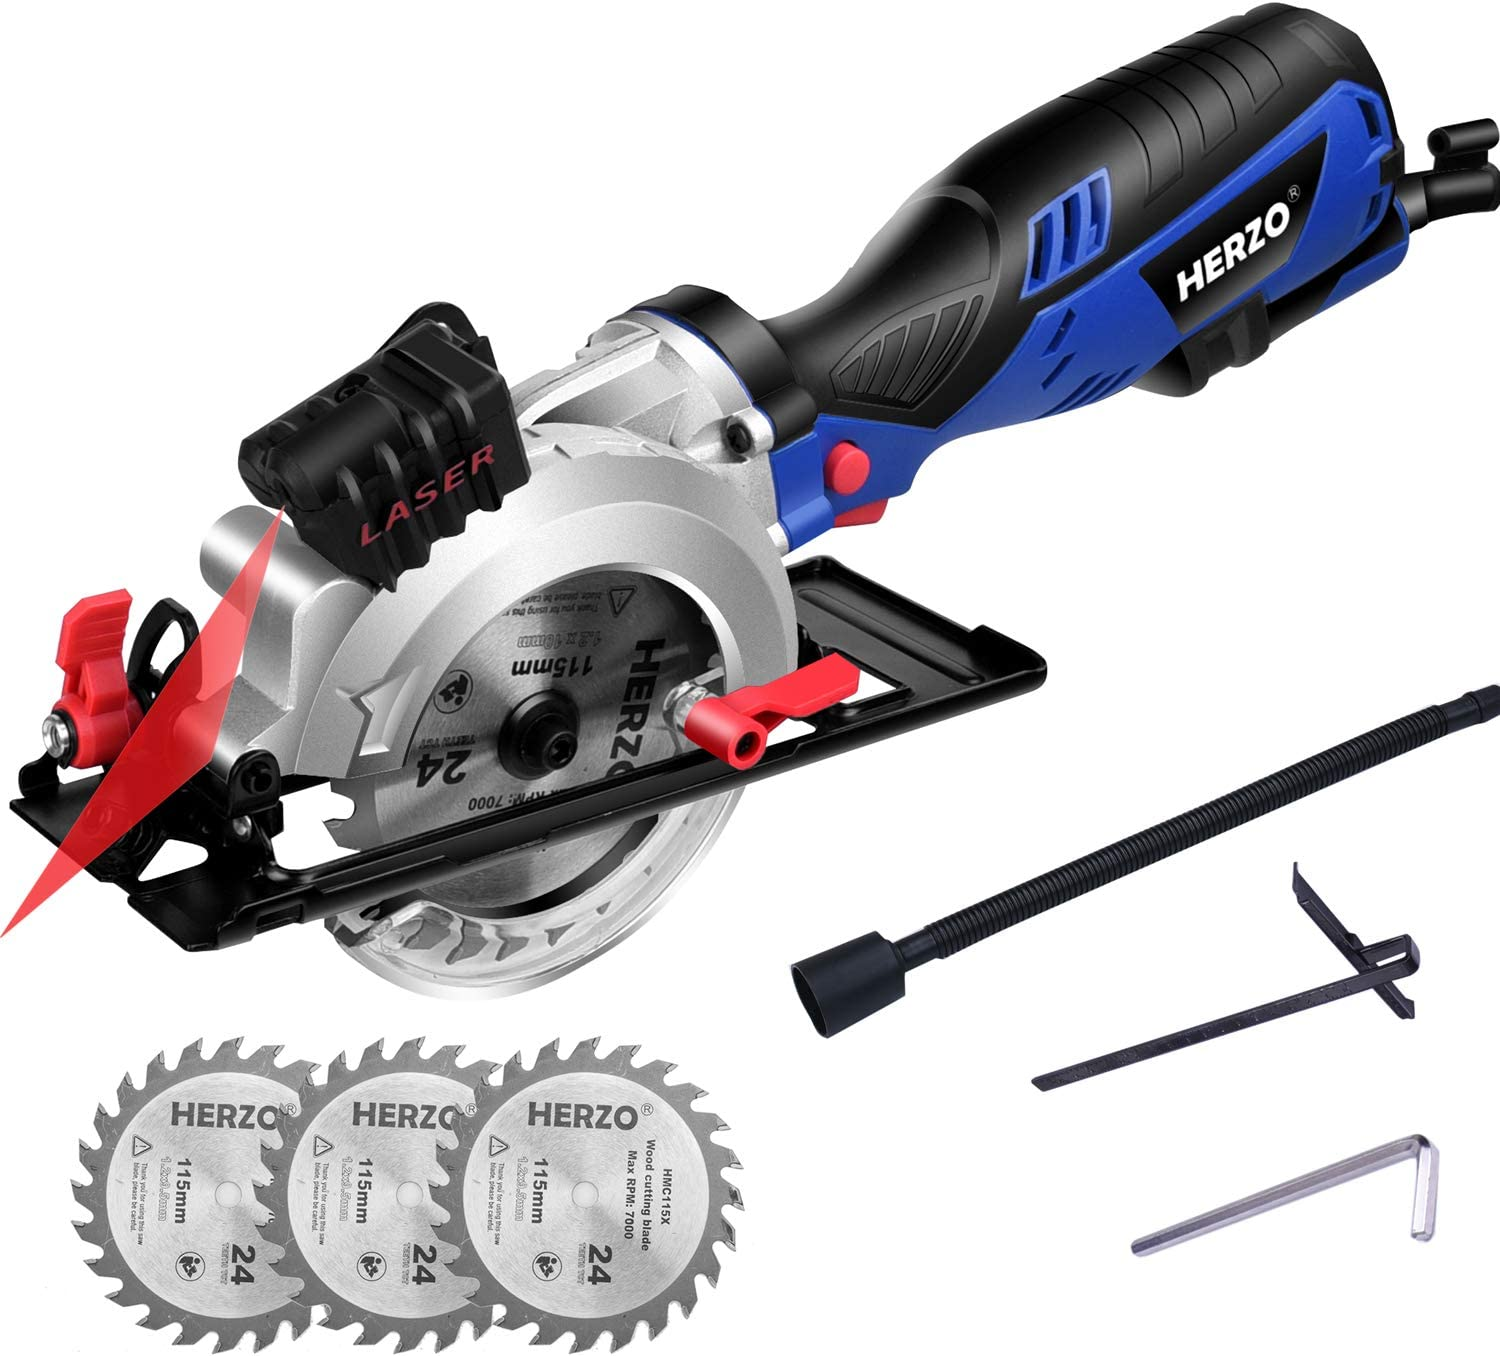 HERZO Compact Circular Saw 4-1 2 with Laser Guide, Max Cutting Depth 1-9 10 90 , 1-3 10 0 -45 with 3 Wood Cutting Blades – 5.8A 3500 rpm